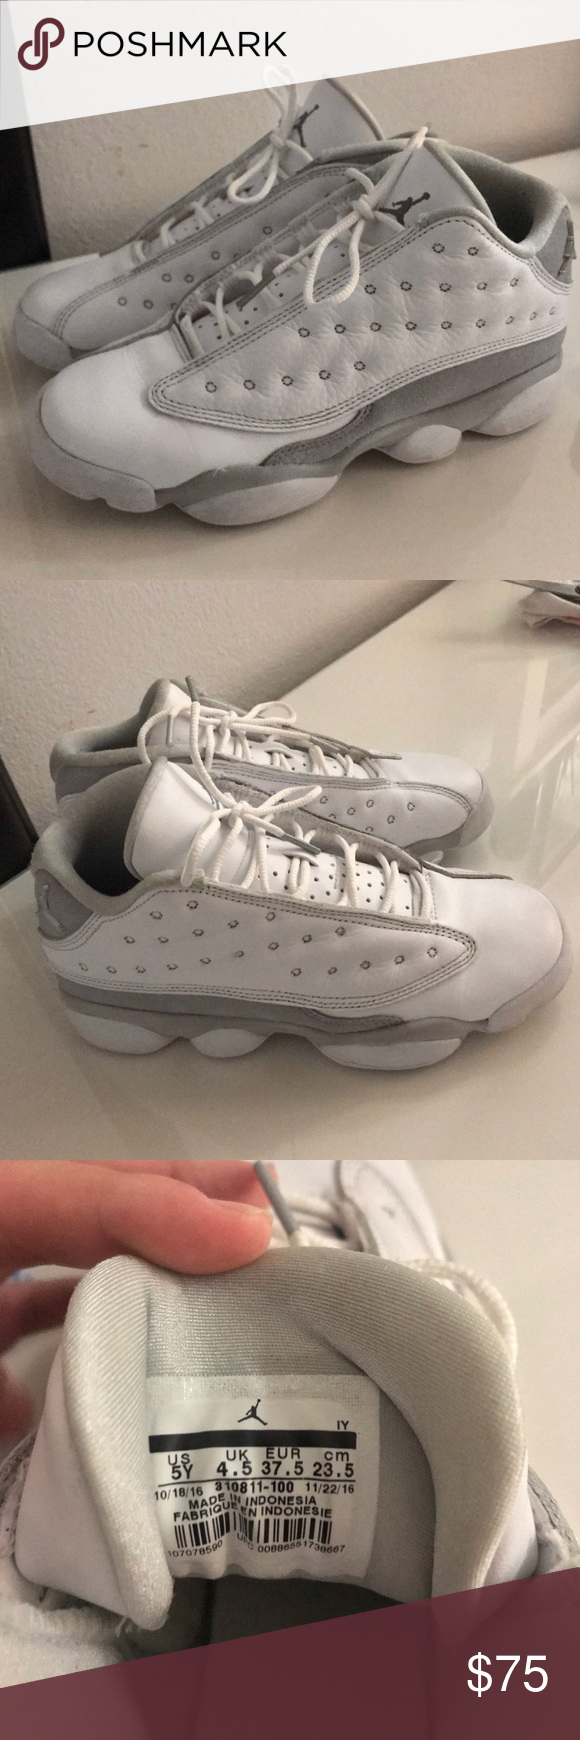 "innovative design 5f7d8 057ac Air Jordan 13 Retro Low BG (GS) ""Pure Money"" Air Jordan Retro 13 Low, These  are a Kids size 5 but will fit a women s size 6.5-7 Jordan Shoes Sneakers"